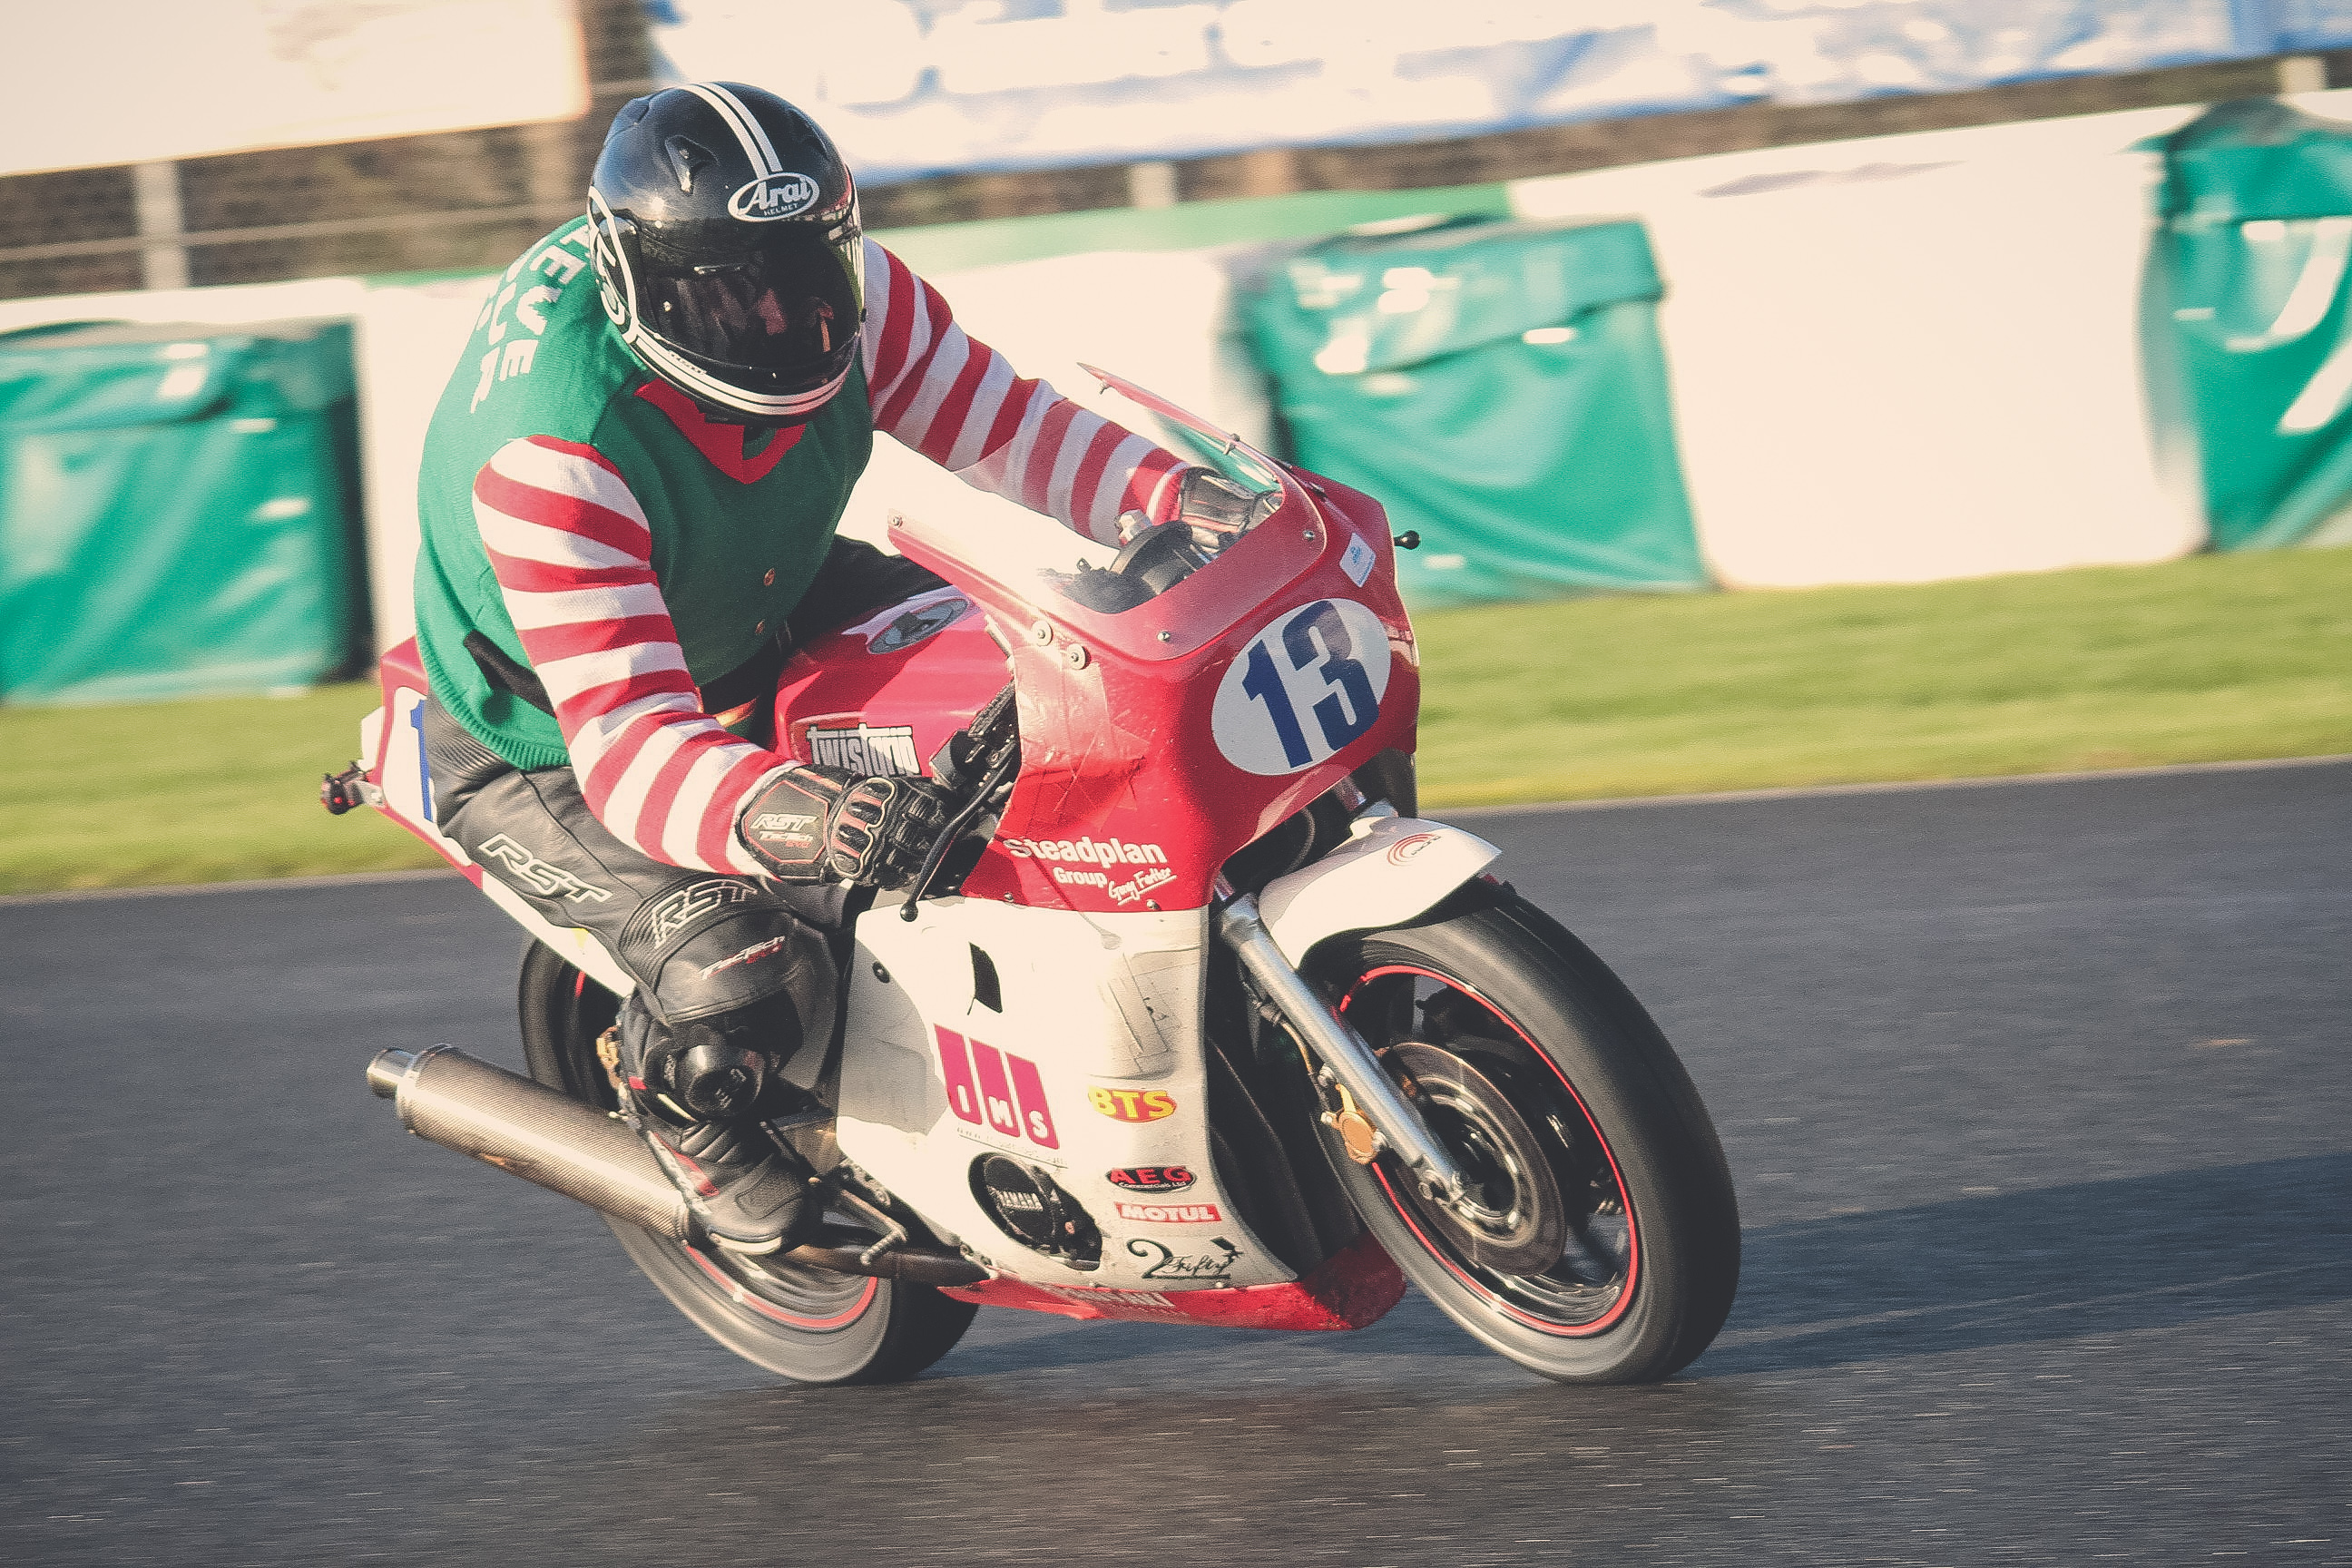 Andrew Dyer at Mallory Park Plum Pudding races